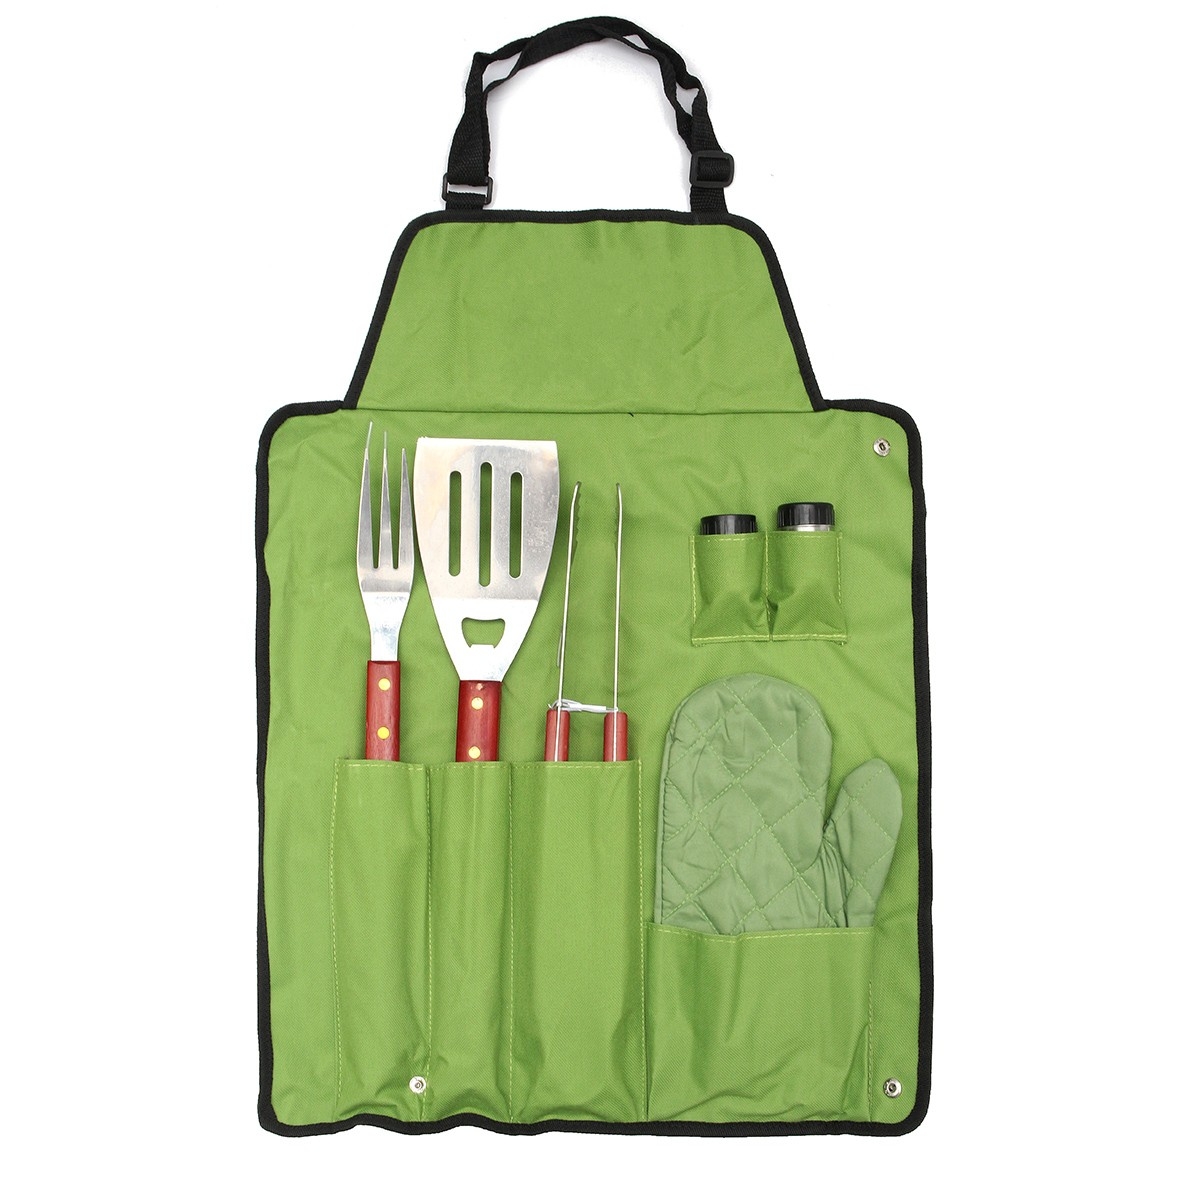 7Pcs Outdoor BBQ Barbecue Picnic Tableware Utensil Set Roll Up Portable Bag Tools